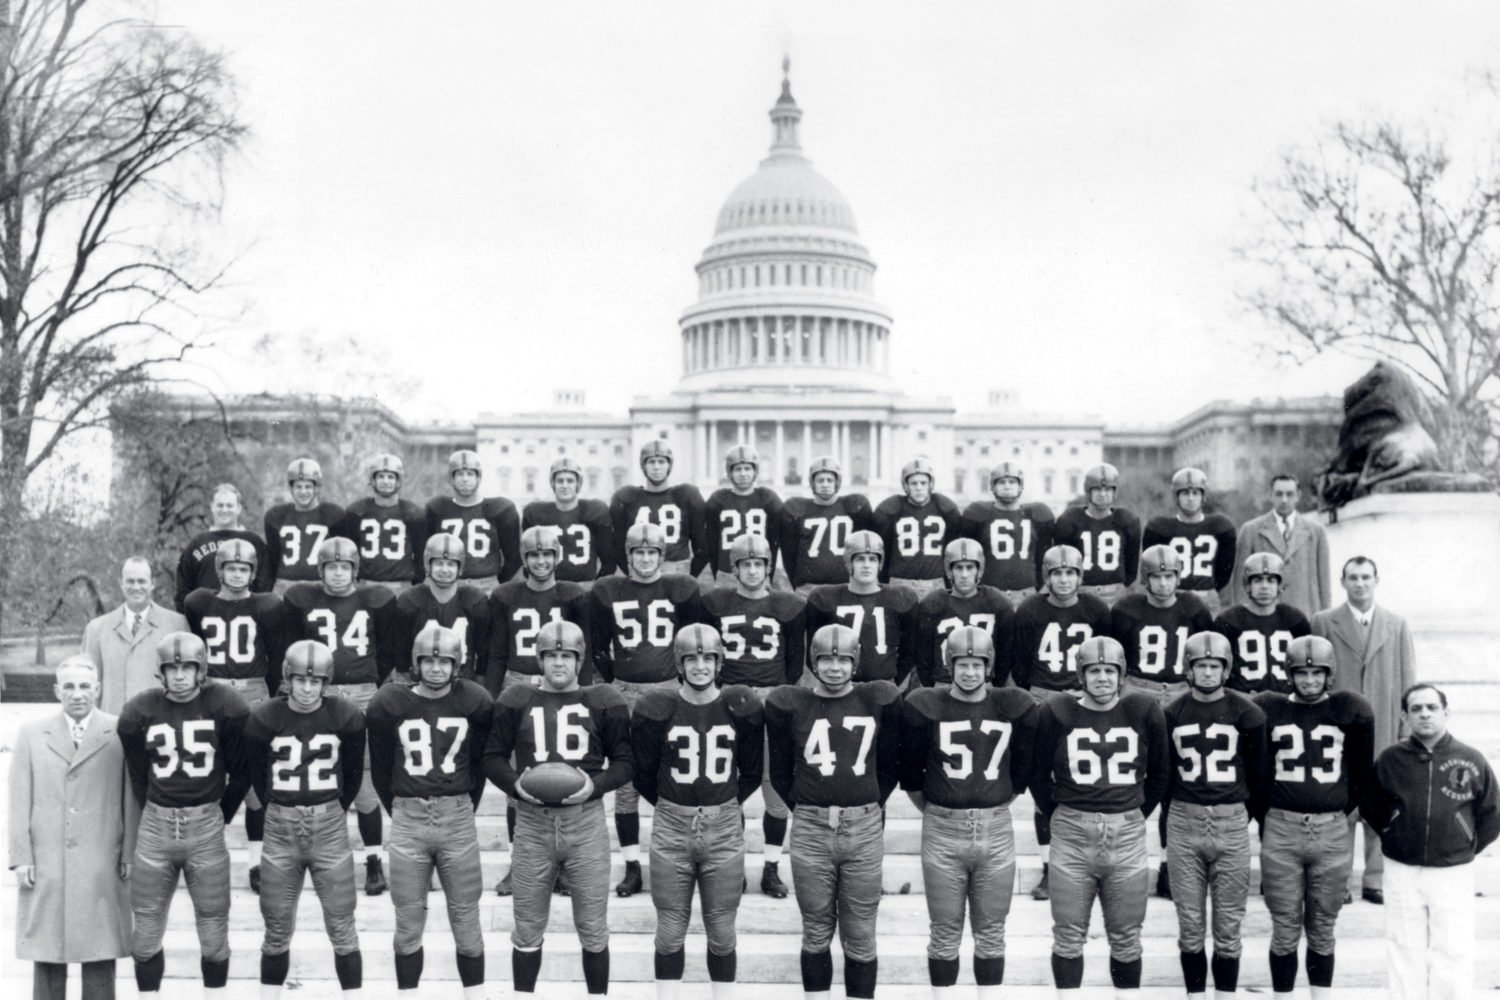 Washington's football squad in 1950, when it had a 3–9 record. Photograph by AP Photo/Pro Football Hall of Fame.